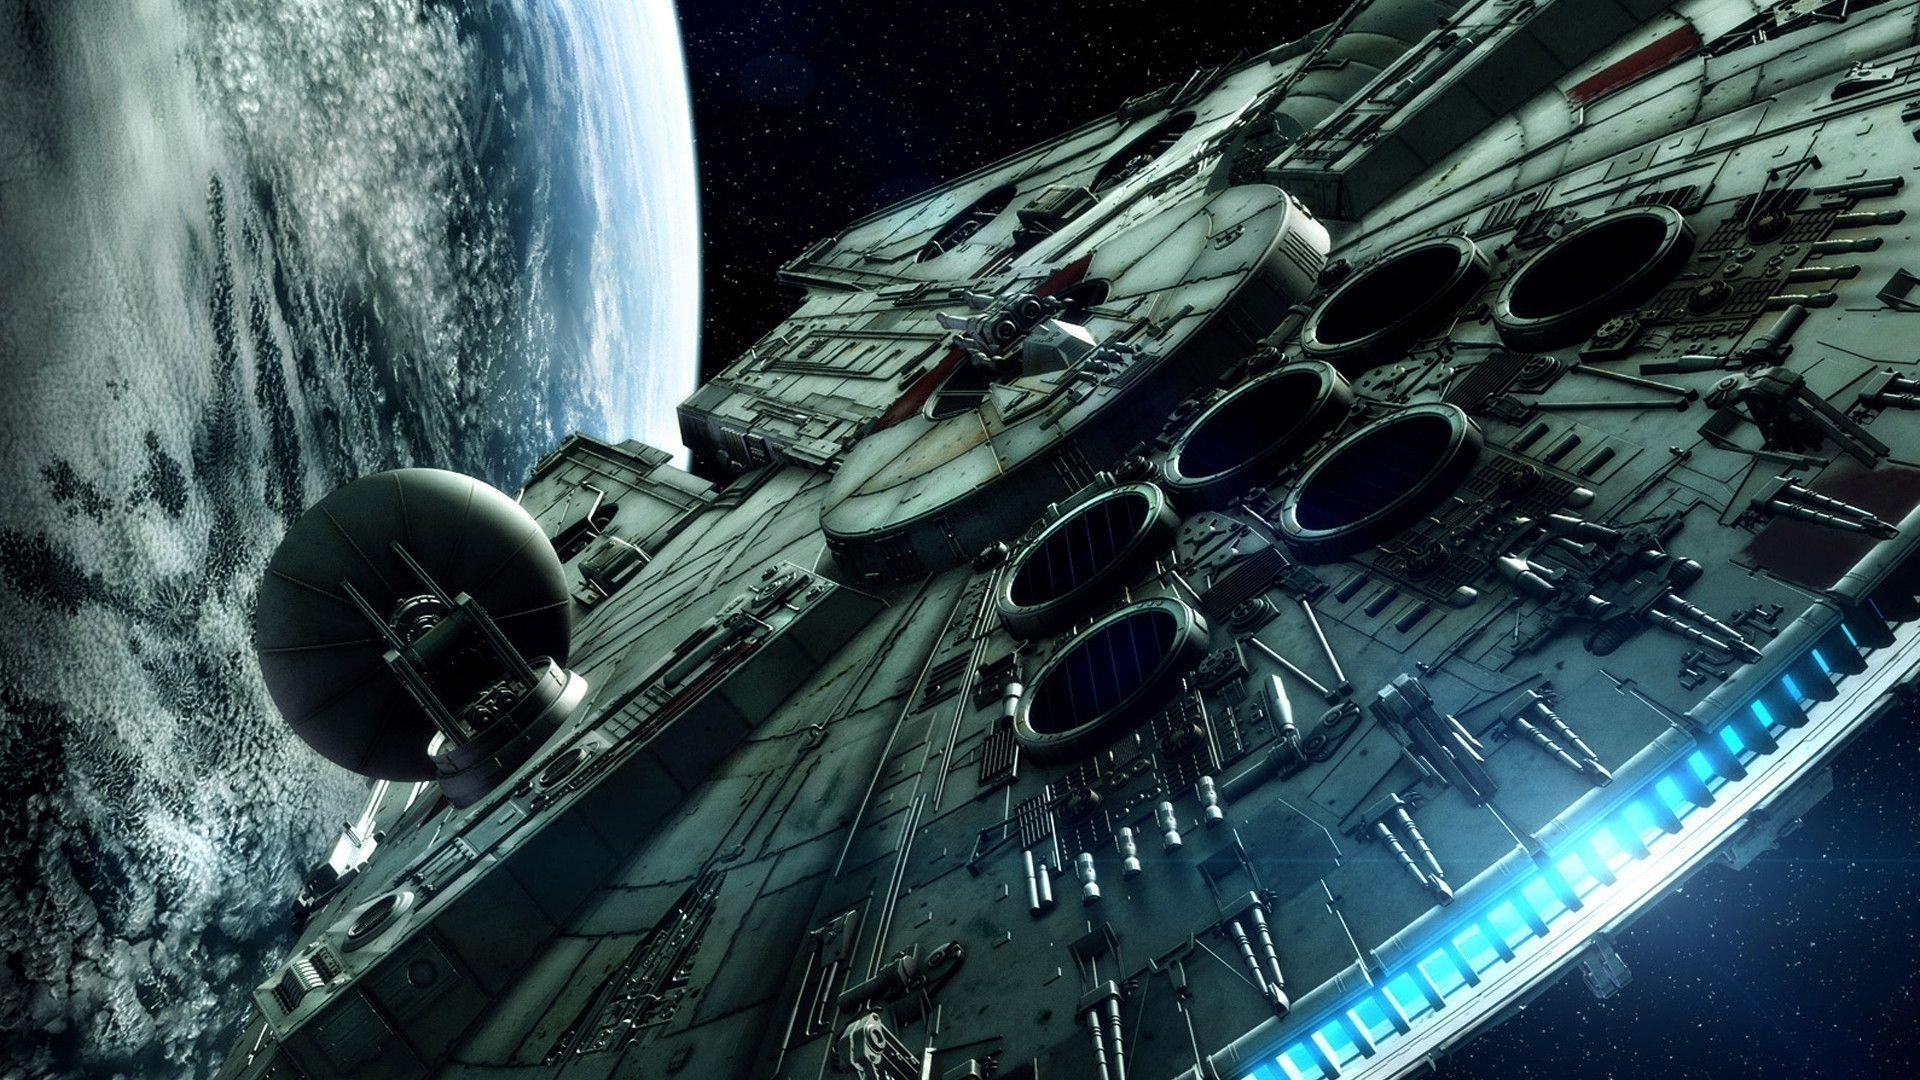 10 Best Hd Star Wars Wallpapers FULL HD 1920×1080 For PC Desktop